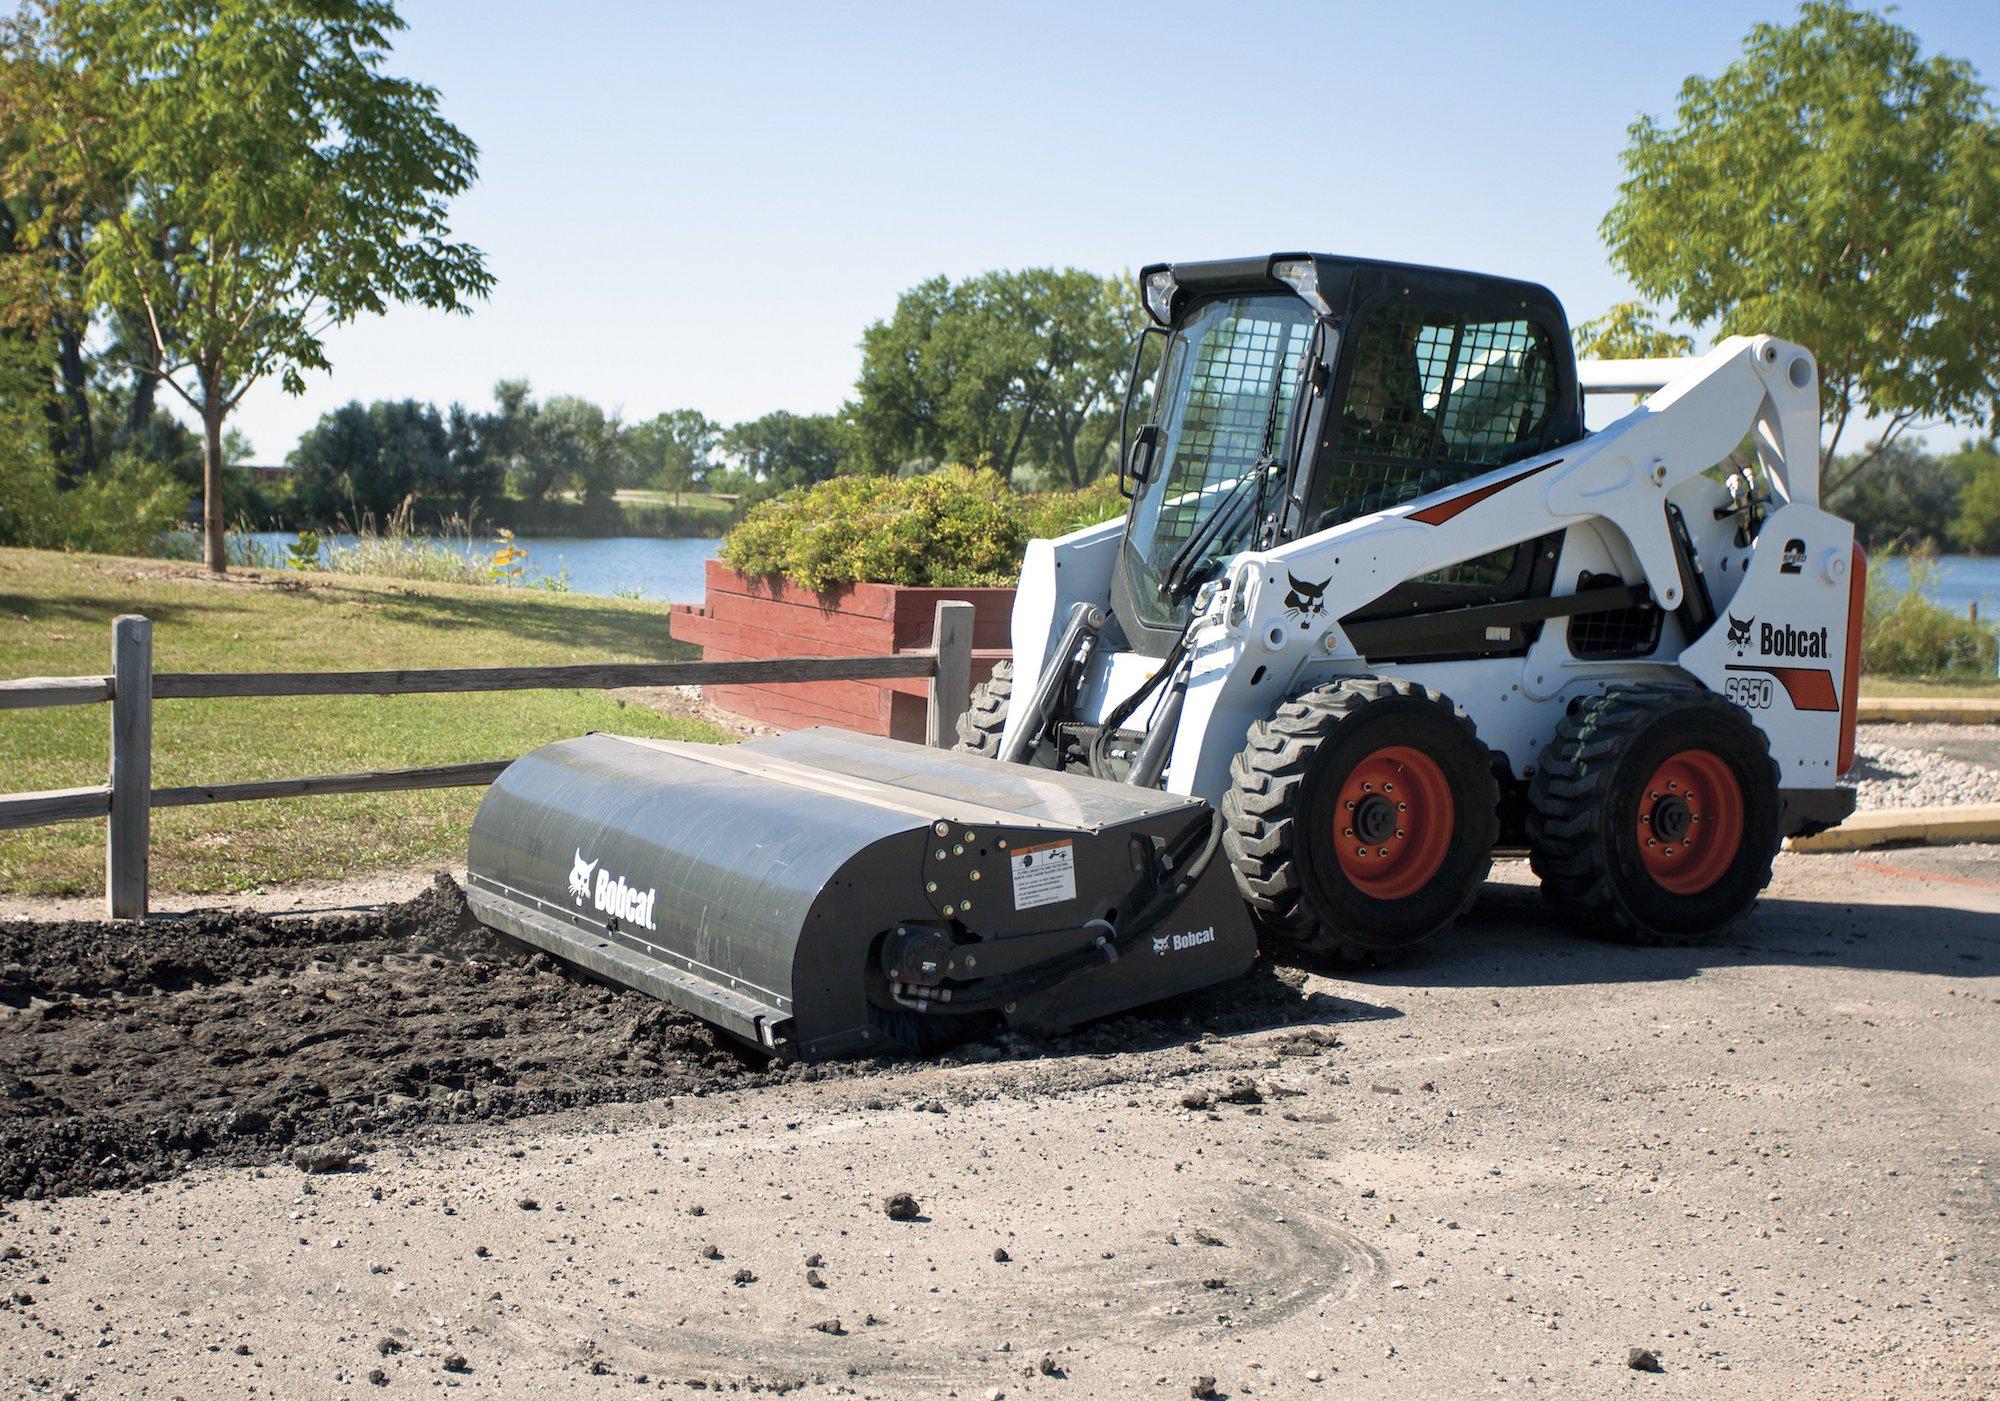 Bobcat unveils M2-Series skid-steer, compact track loaders